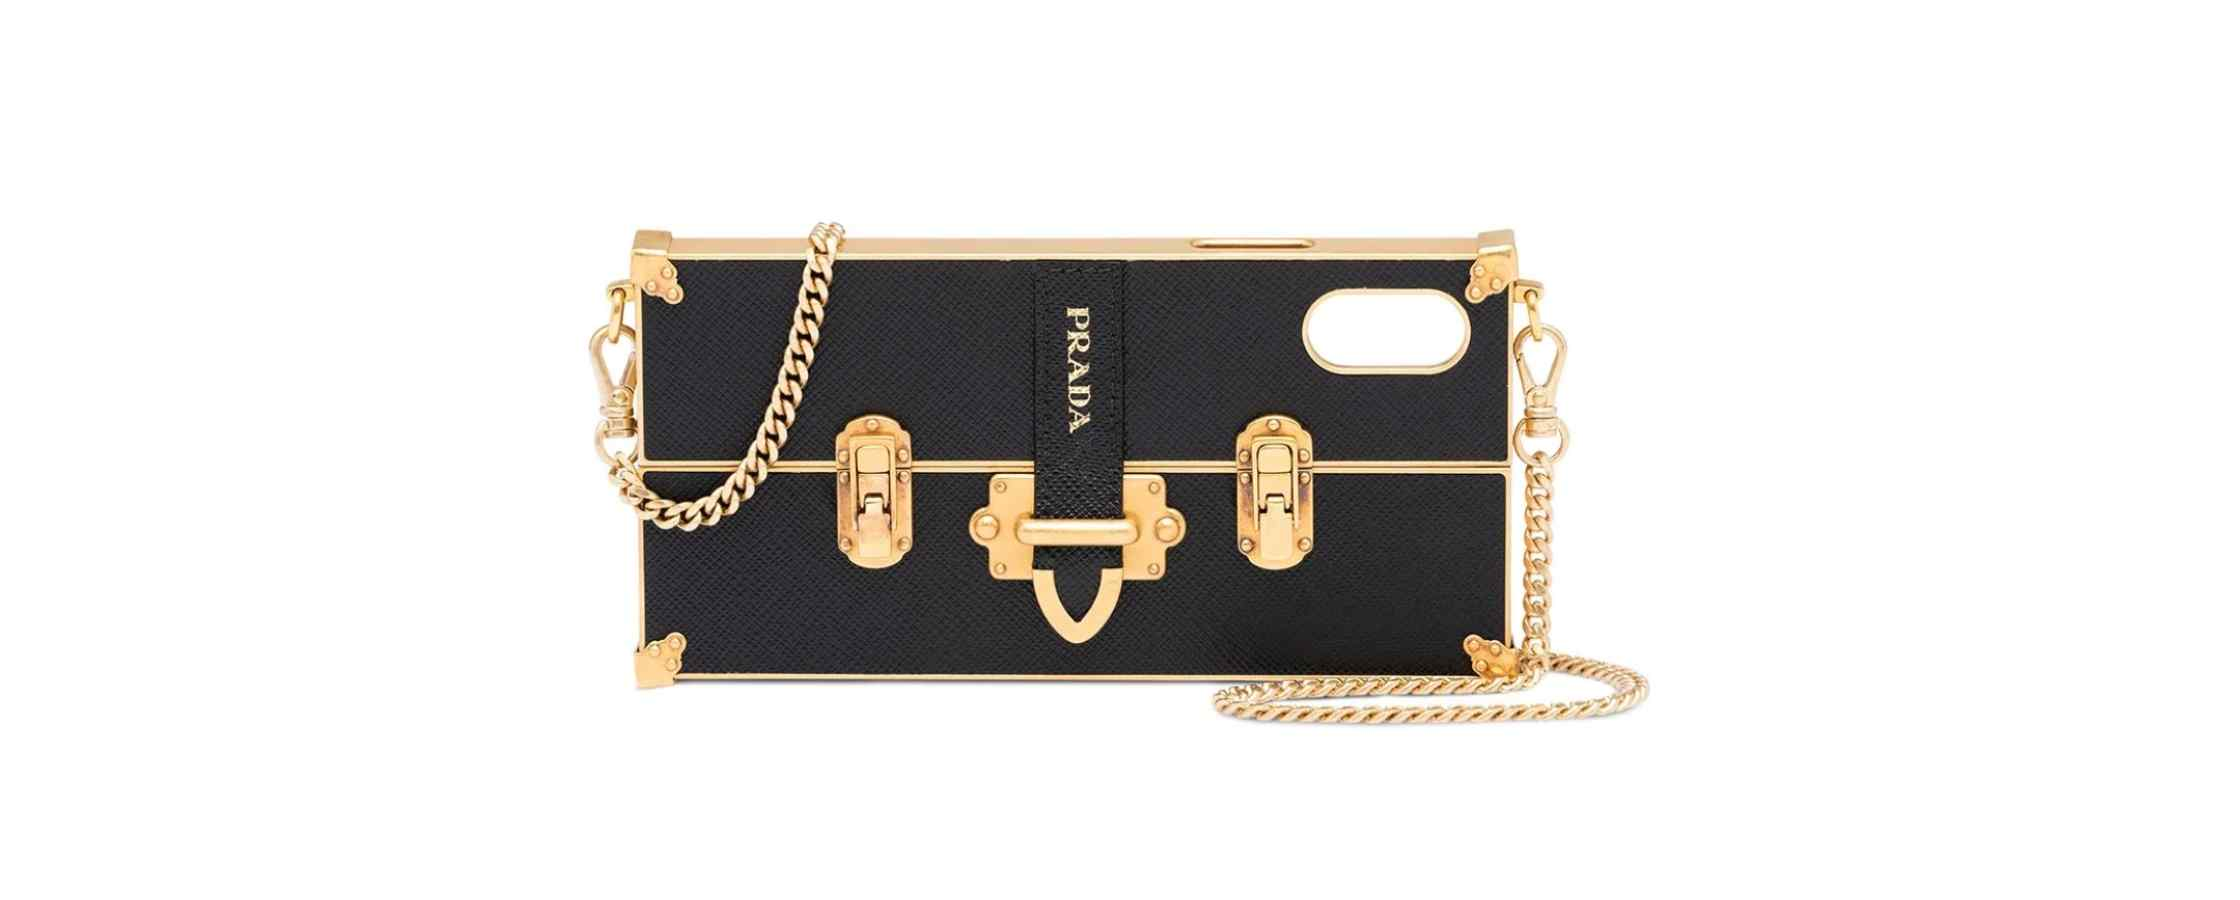 12 Luxurious Designer Phone Cases to Buy Right Now